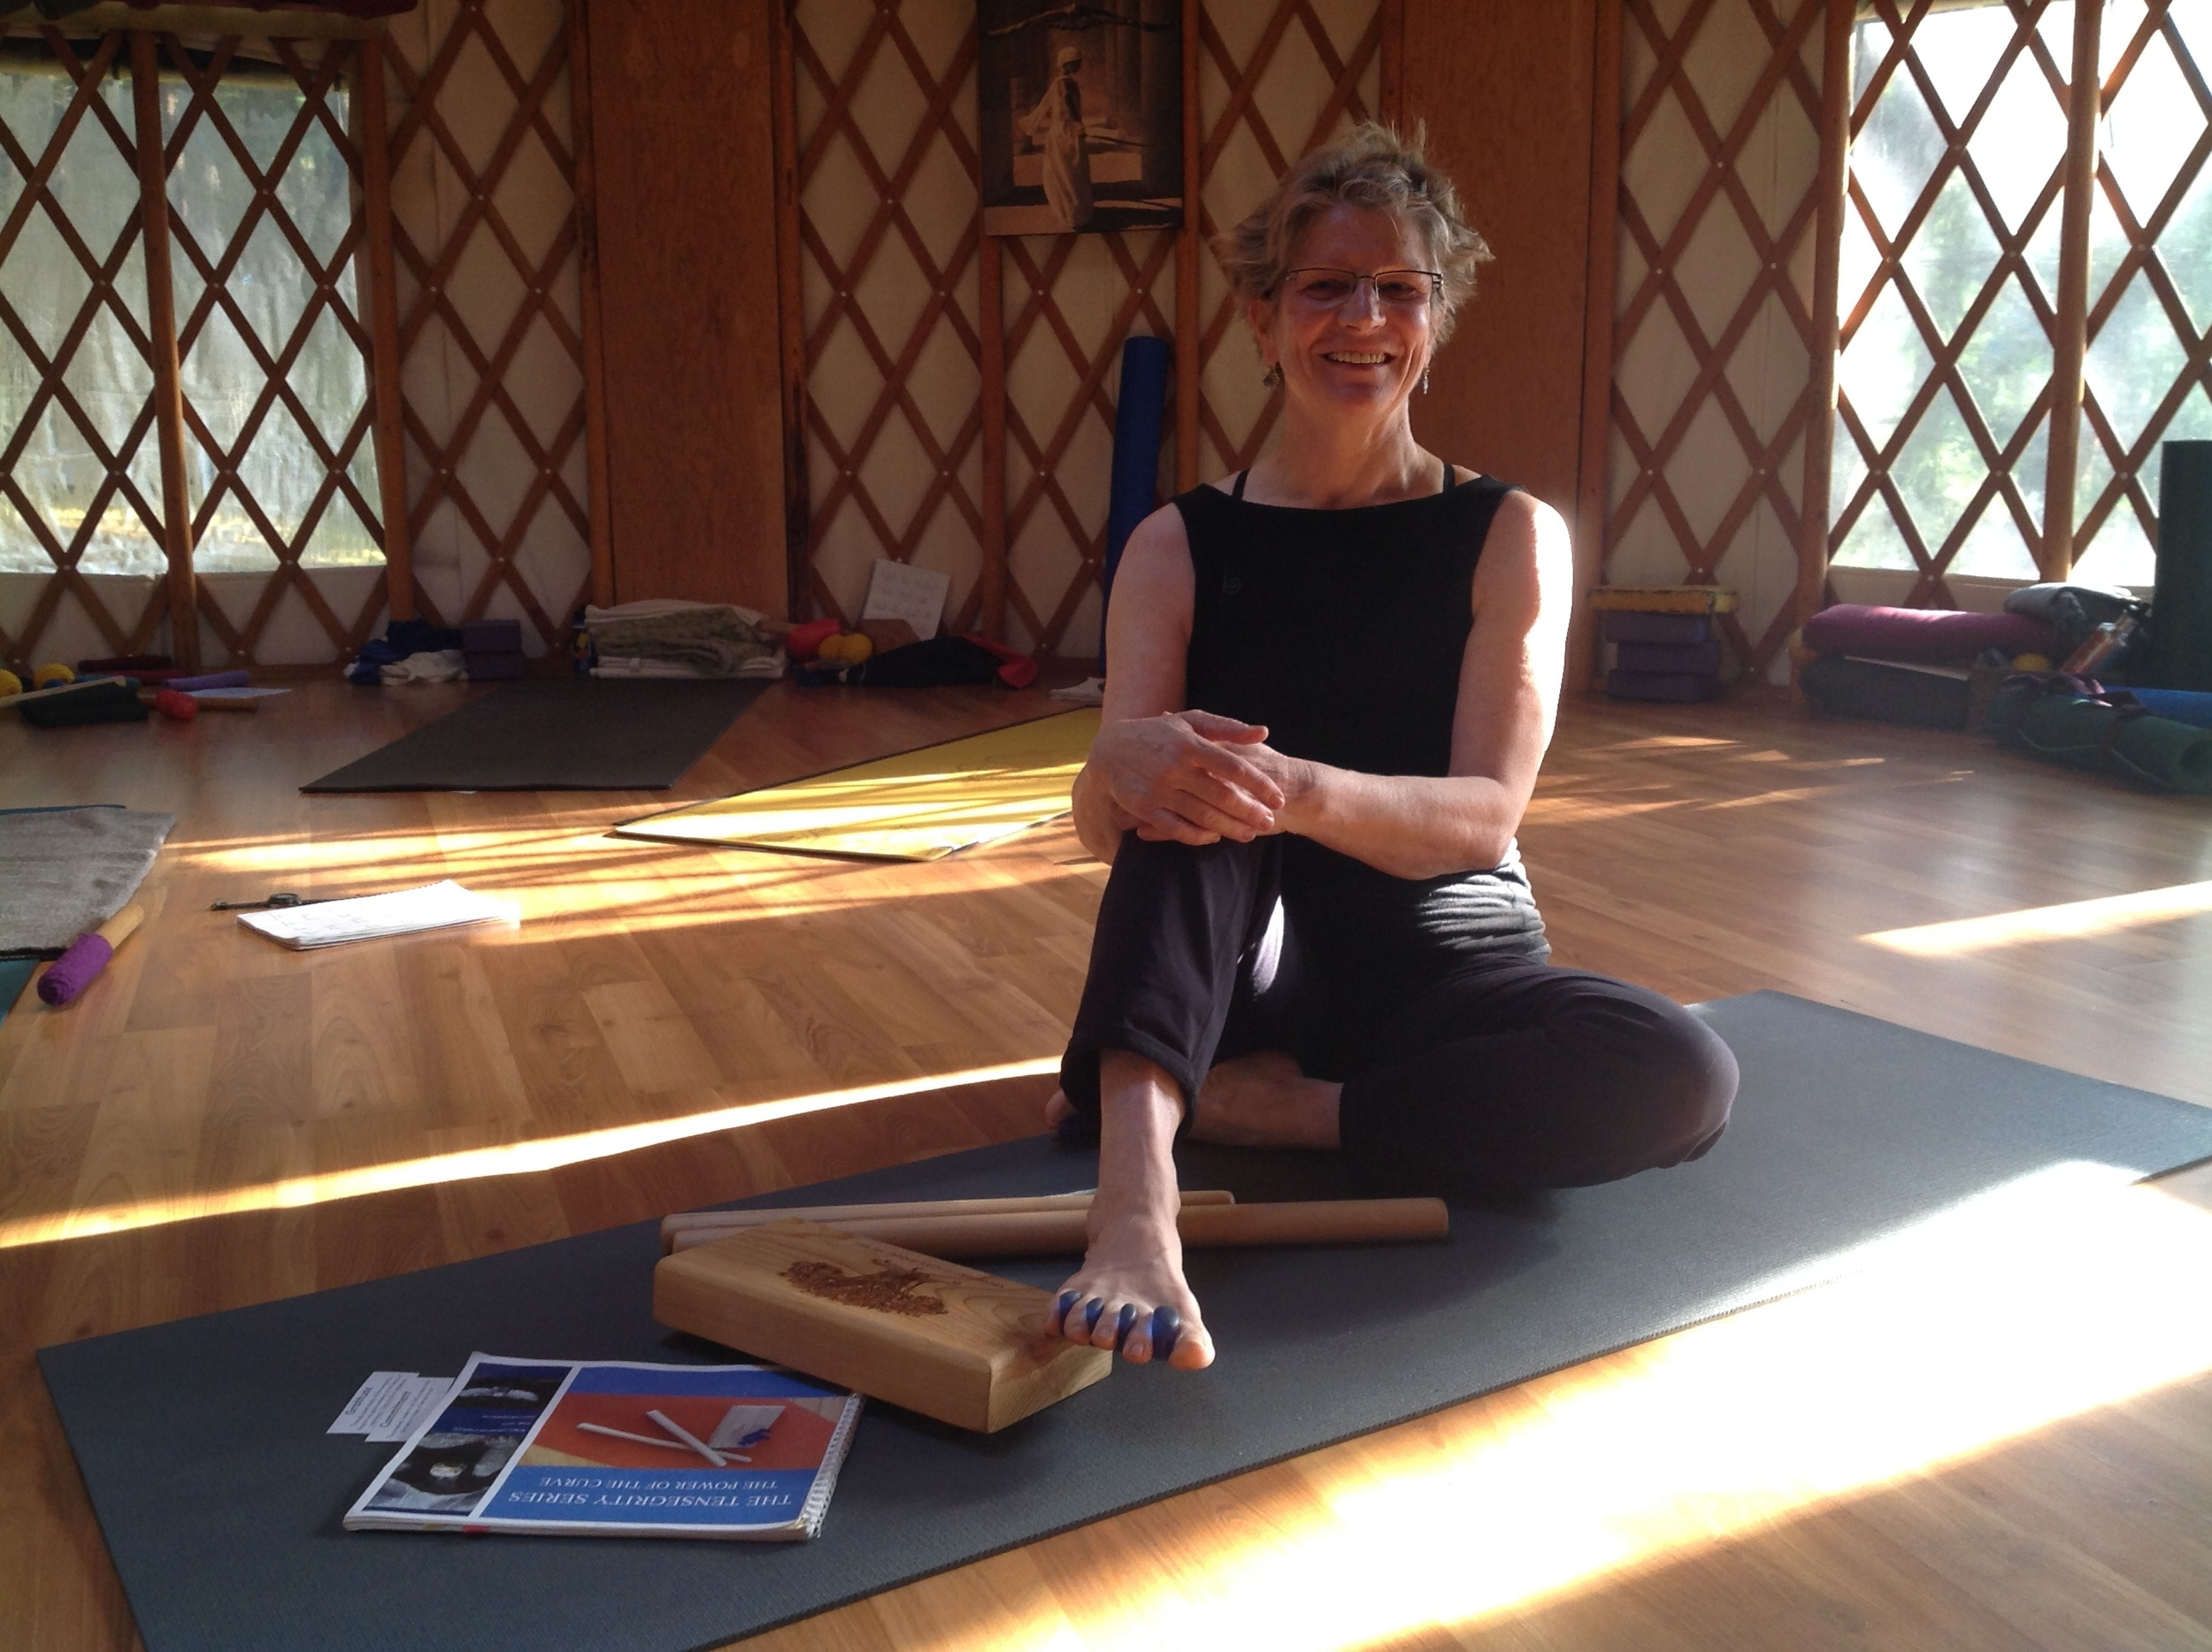 TRUDY AUSTIN  Trudy Austin is a dedicated Yoga teacher, who trained and continues to work with Gioia Irwin, Chris Clancy and Orit Sen Gupta. Her passion is to bring ease, stillness and fluidity to our minds and bodies. She is accredited with Vijnana Yoga International